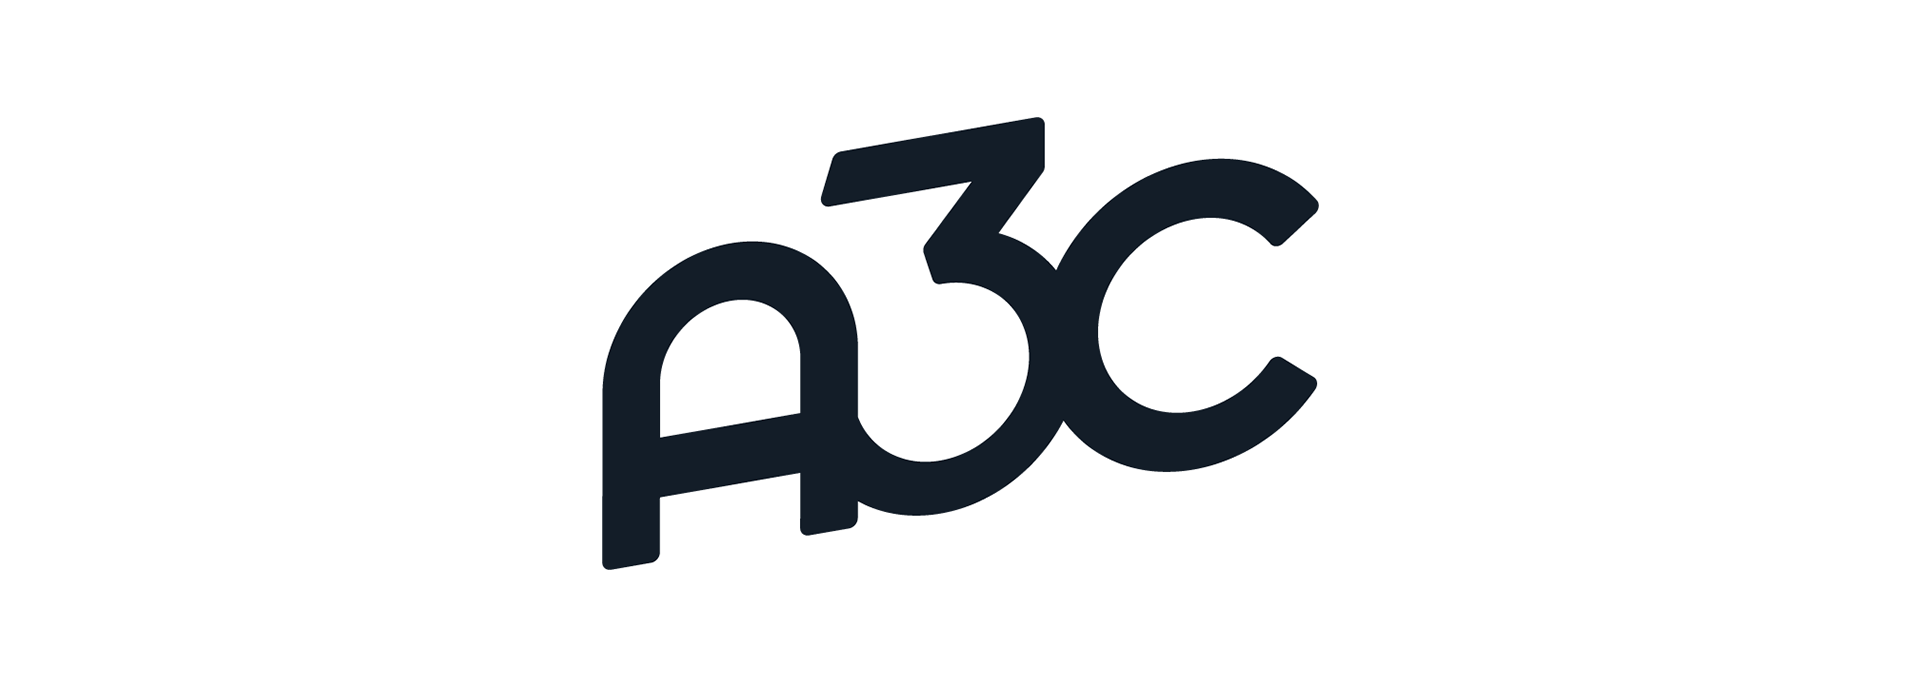 A3C channel